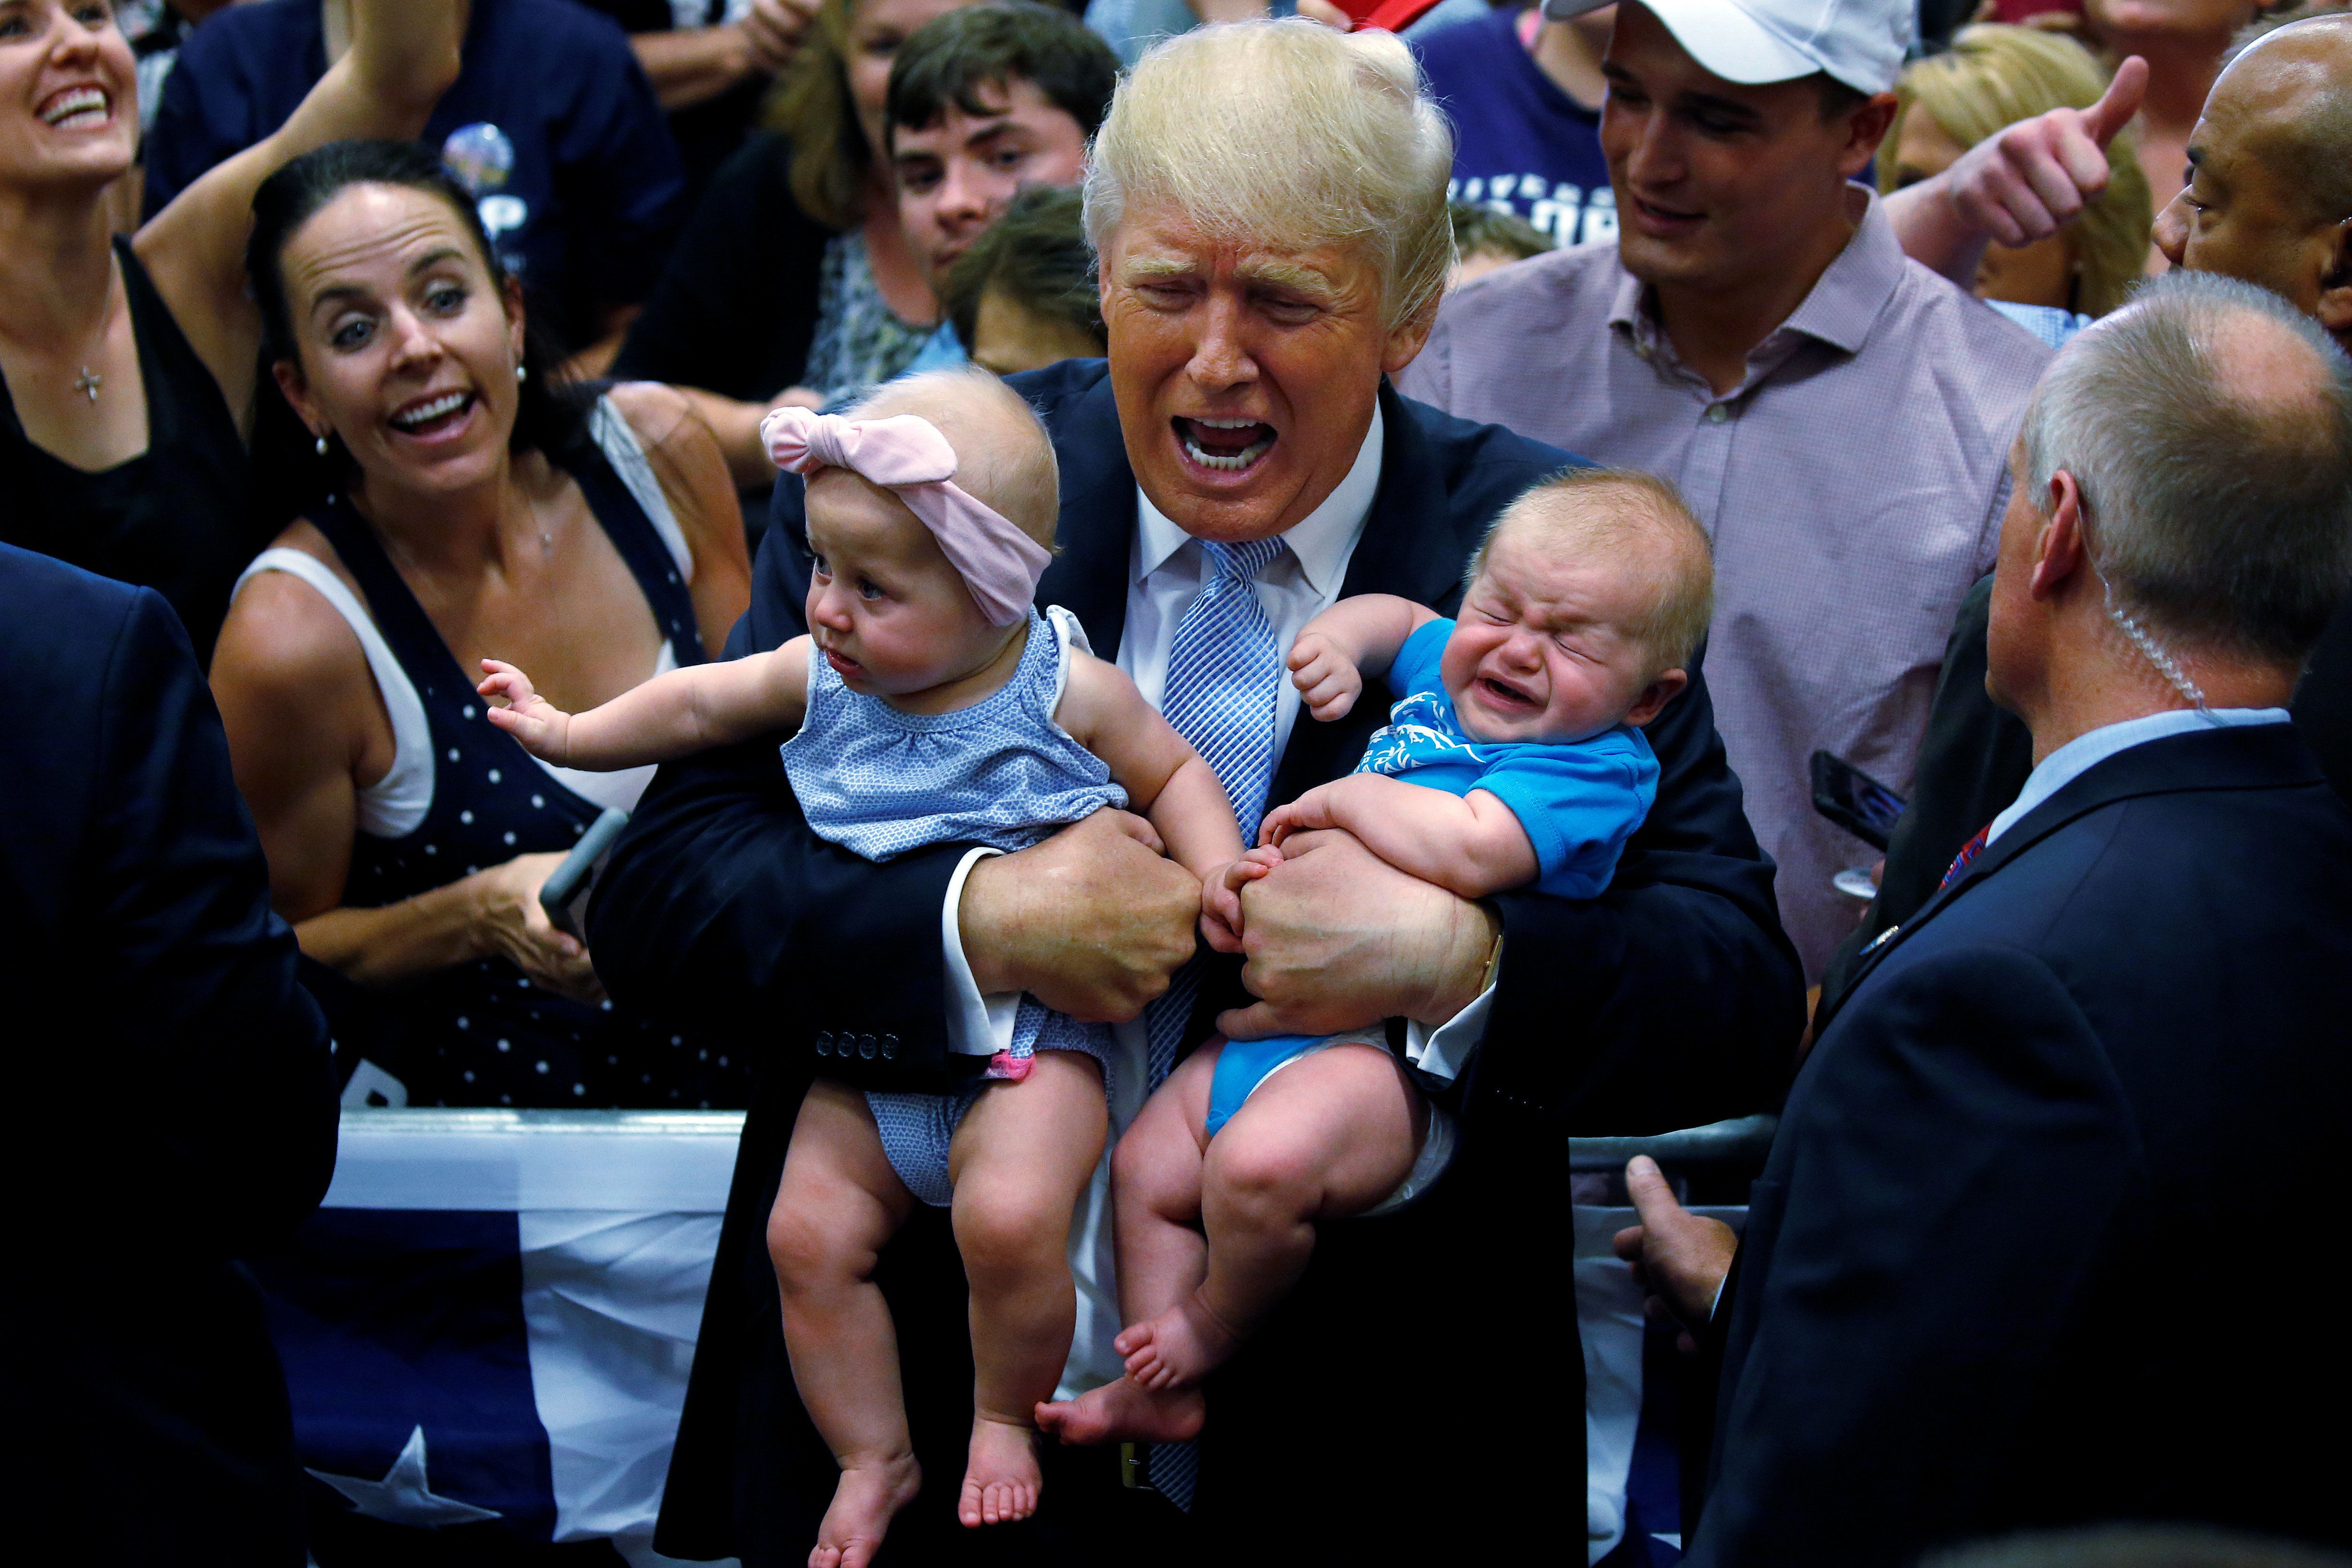 The baby name Donald declined in popularity between 2015 and2016.